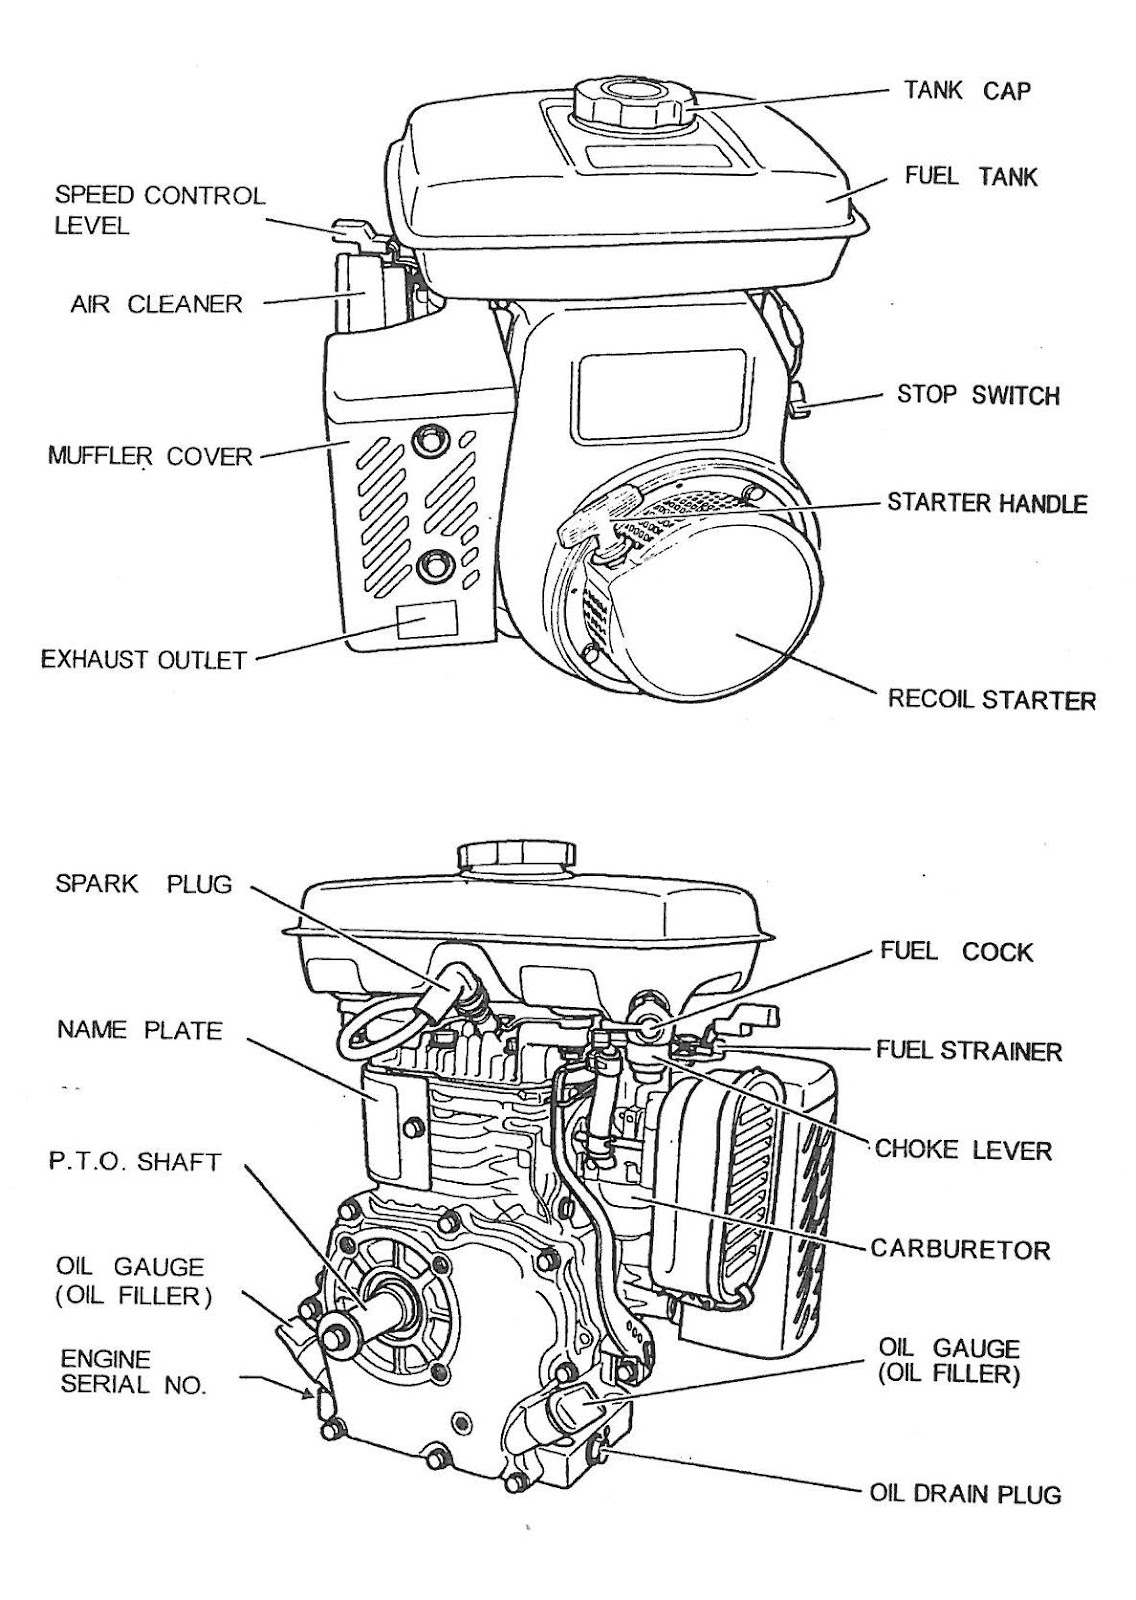 robin subaru engine diagram wiring library rh 59 codingcommunity de ezgo robin engine parts diagram ezgo robin engine wiring diagram [ 1136 x 1600 Pixel ]